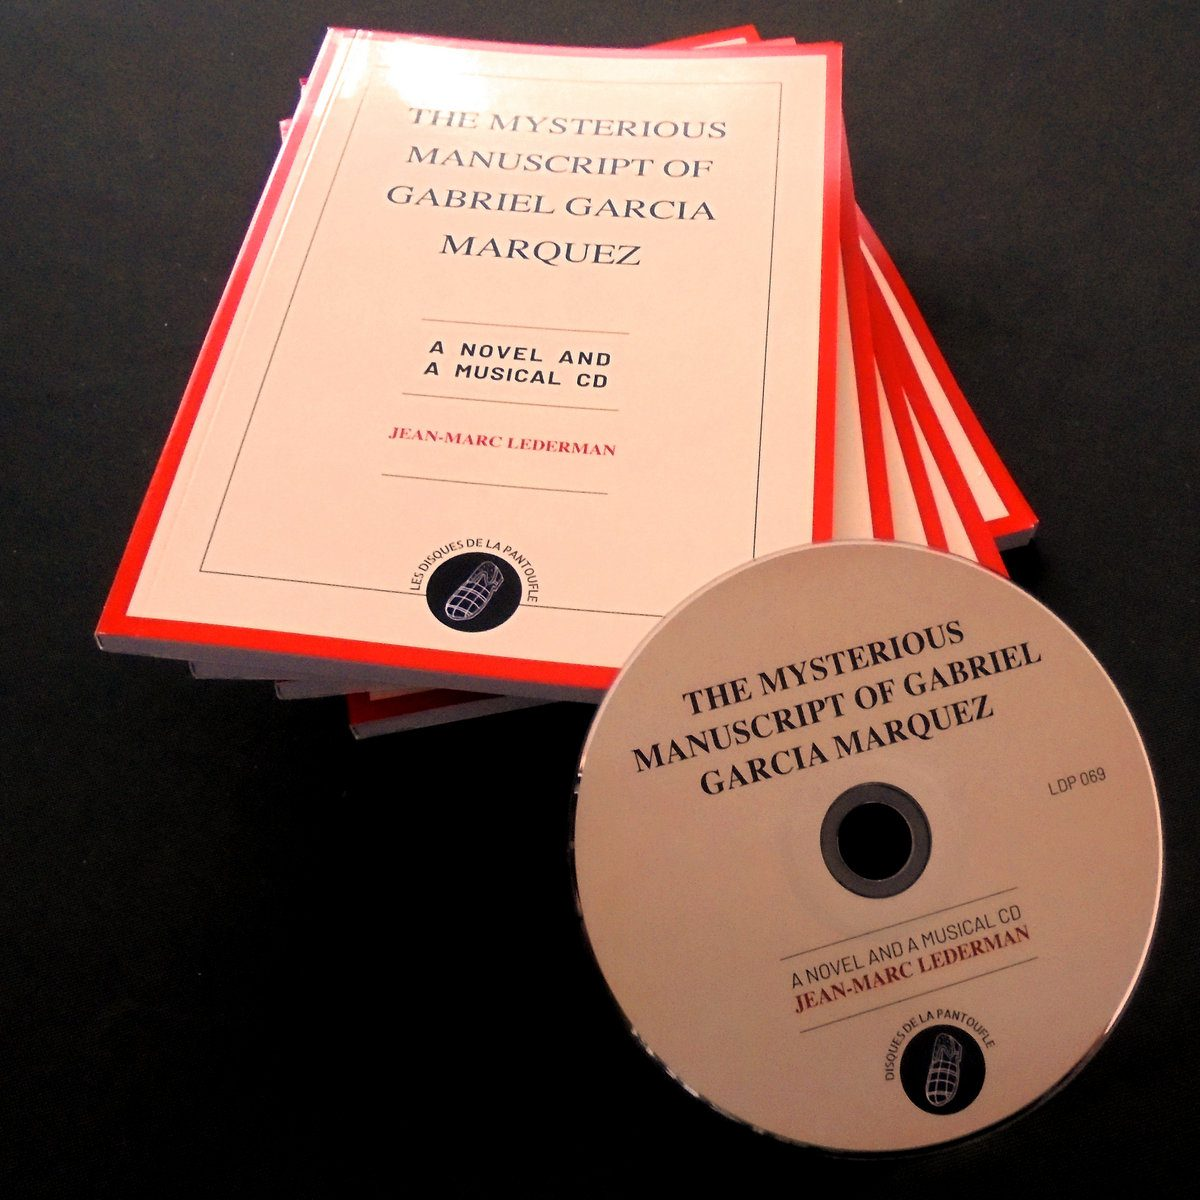 New electronica release for Jean-Marc Lederman lands in the shops: 'The Mysterious Manuscript of Gabriel Garcia Marquez'